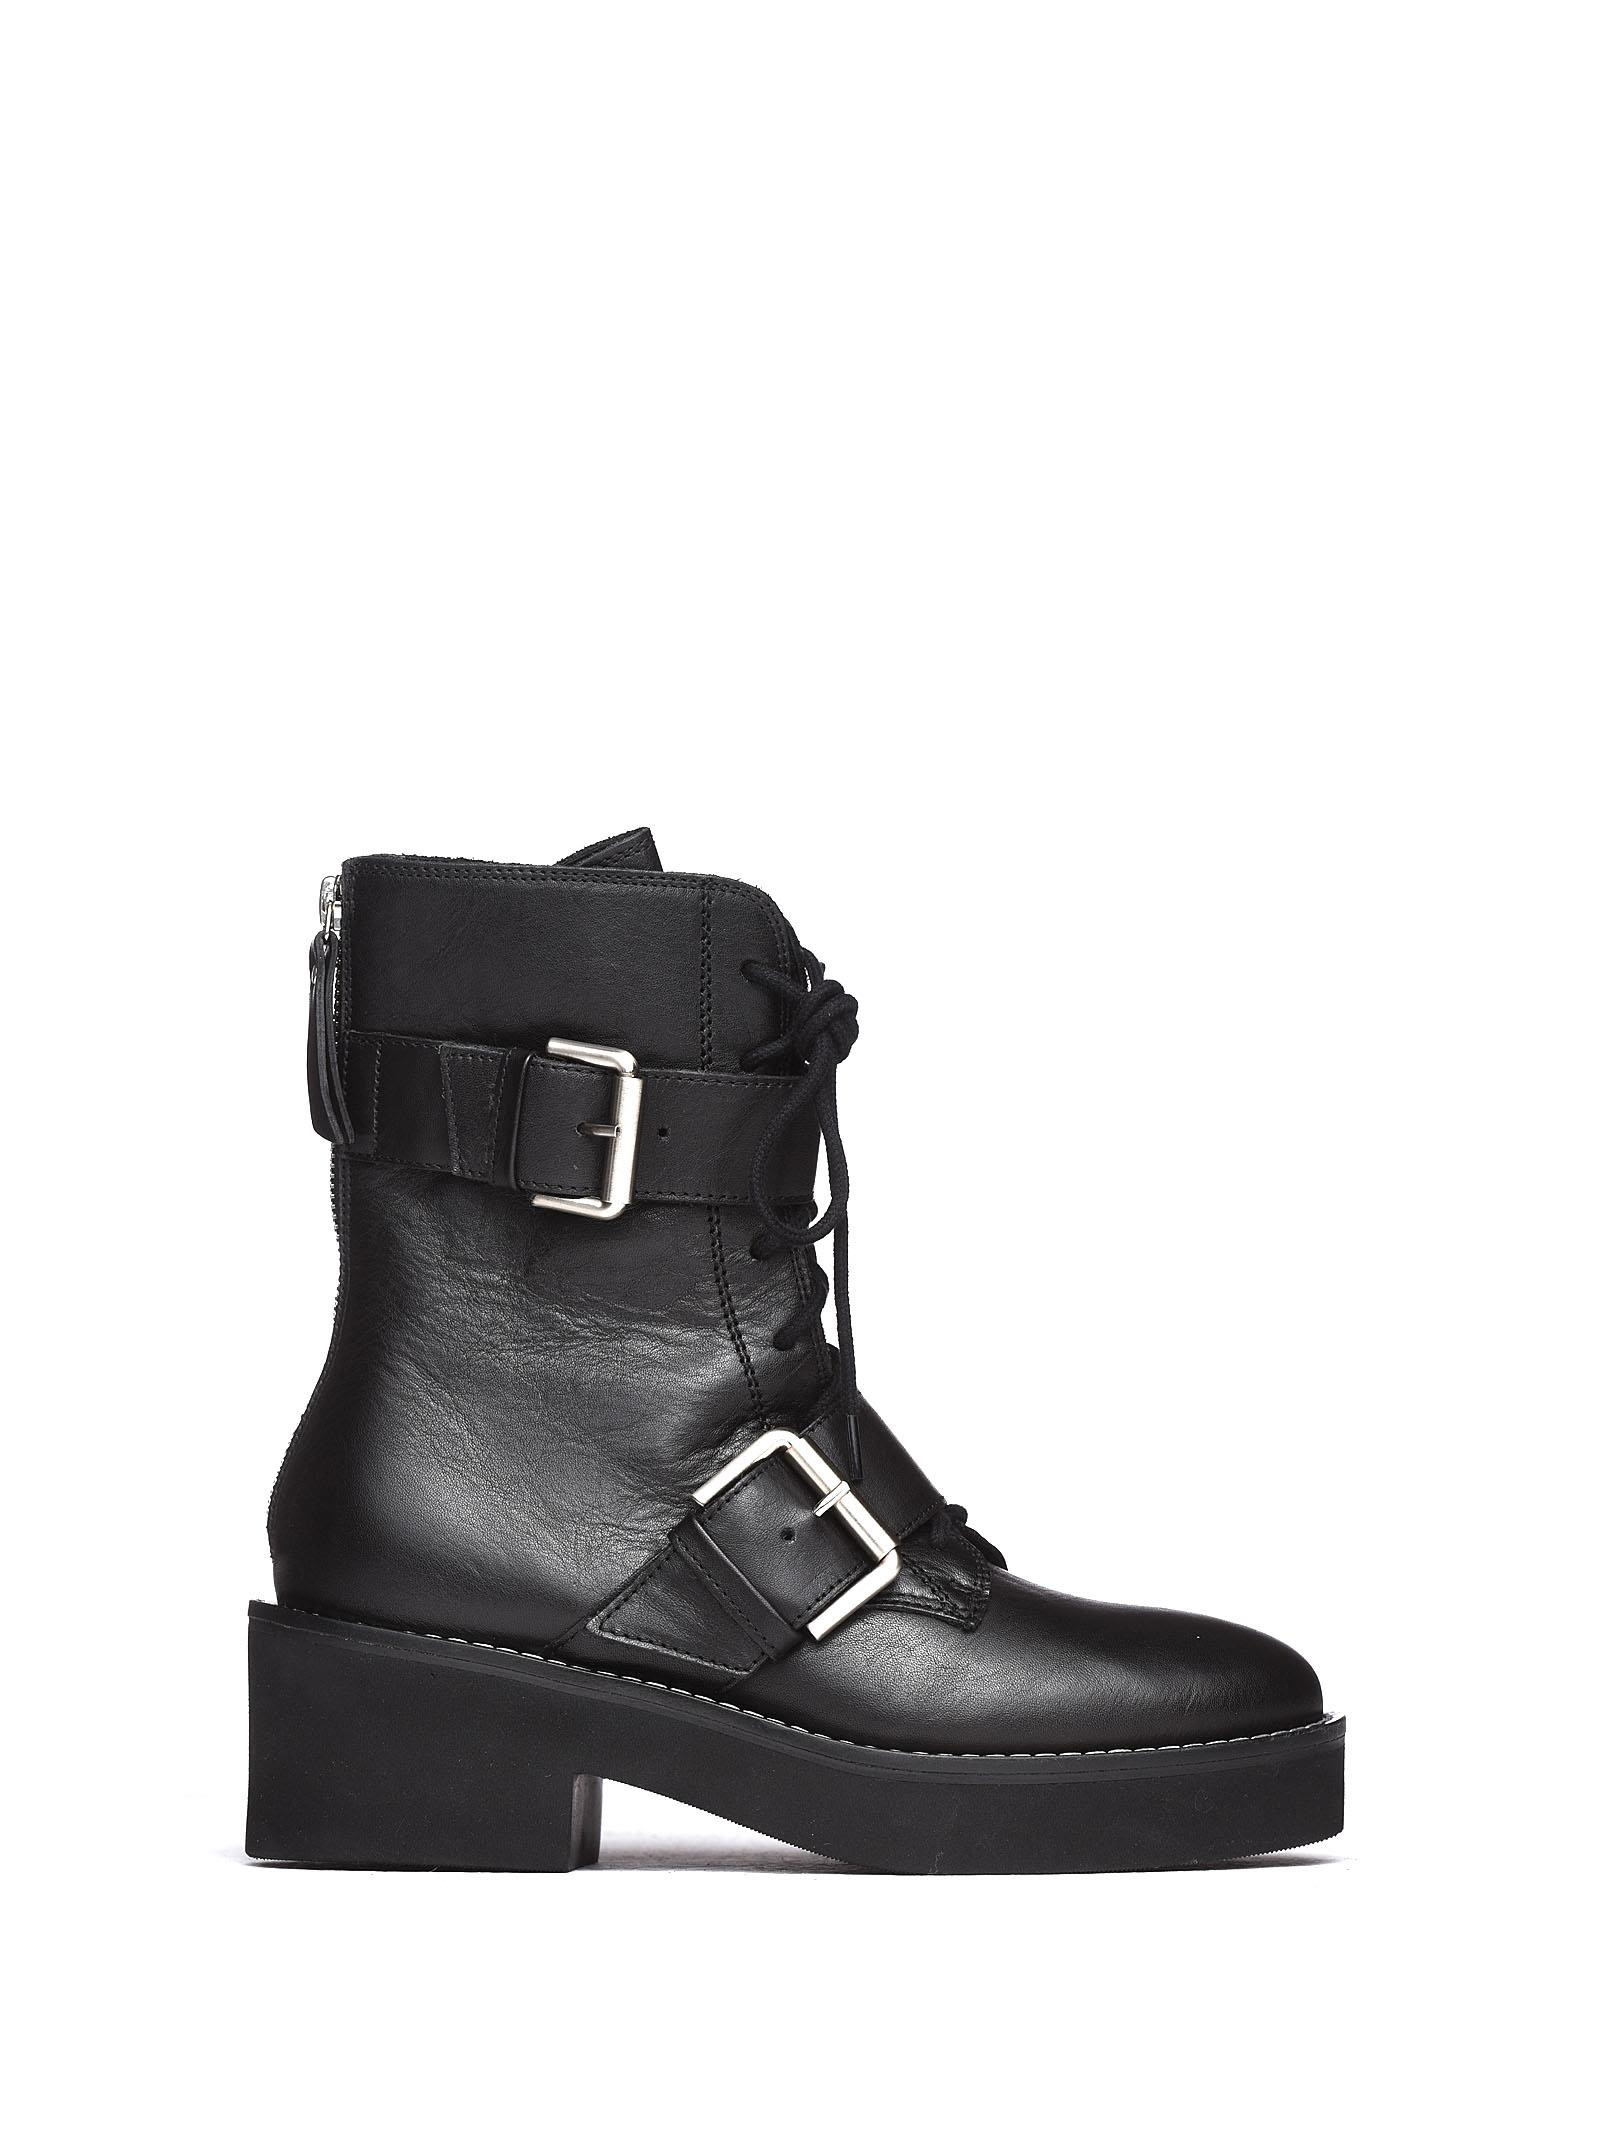 VIC MATIE Black Military Boots With Buckles And Rubber Sole in Nero